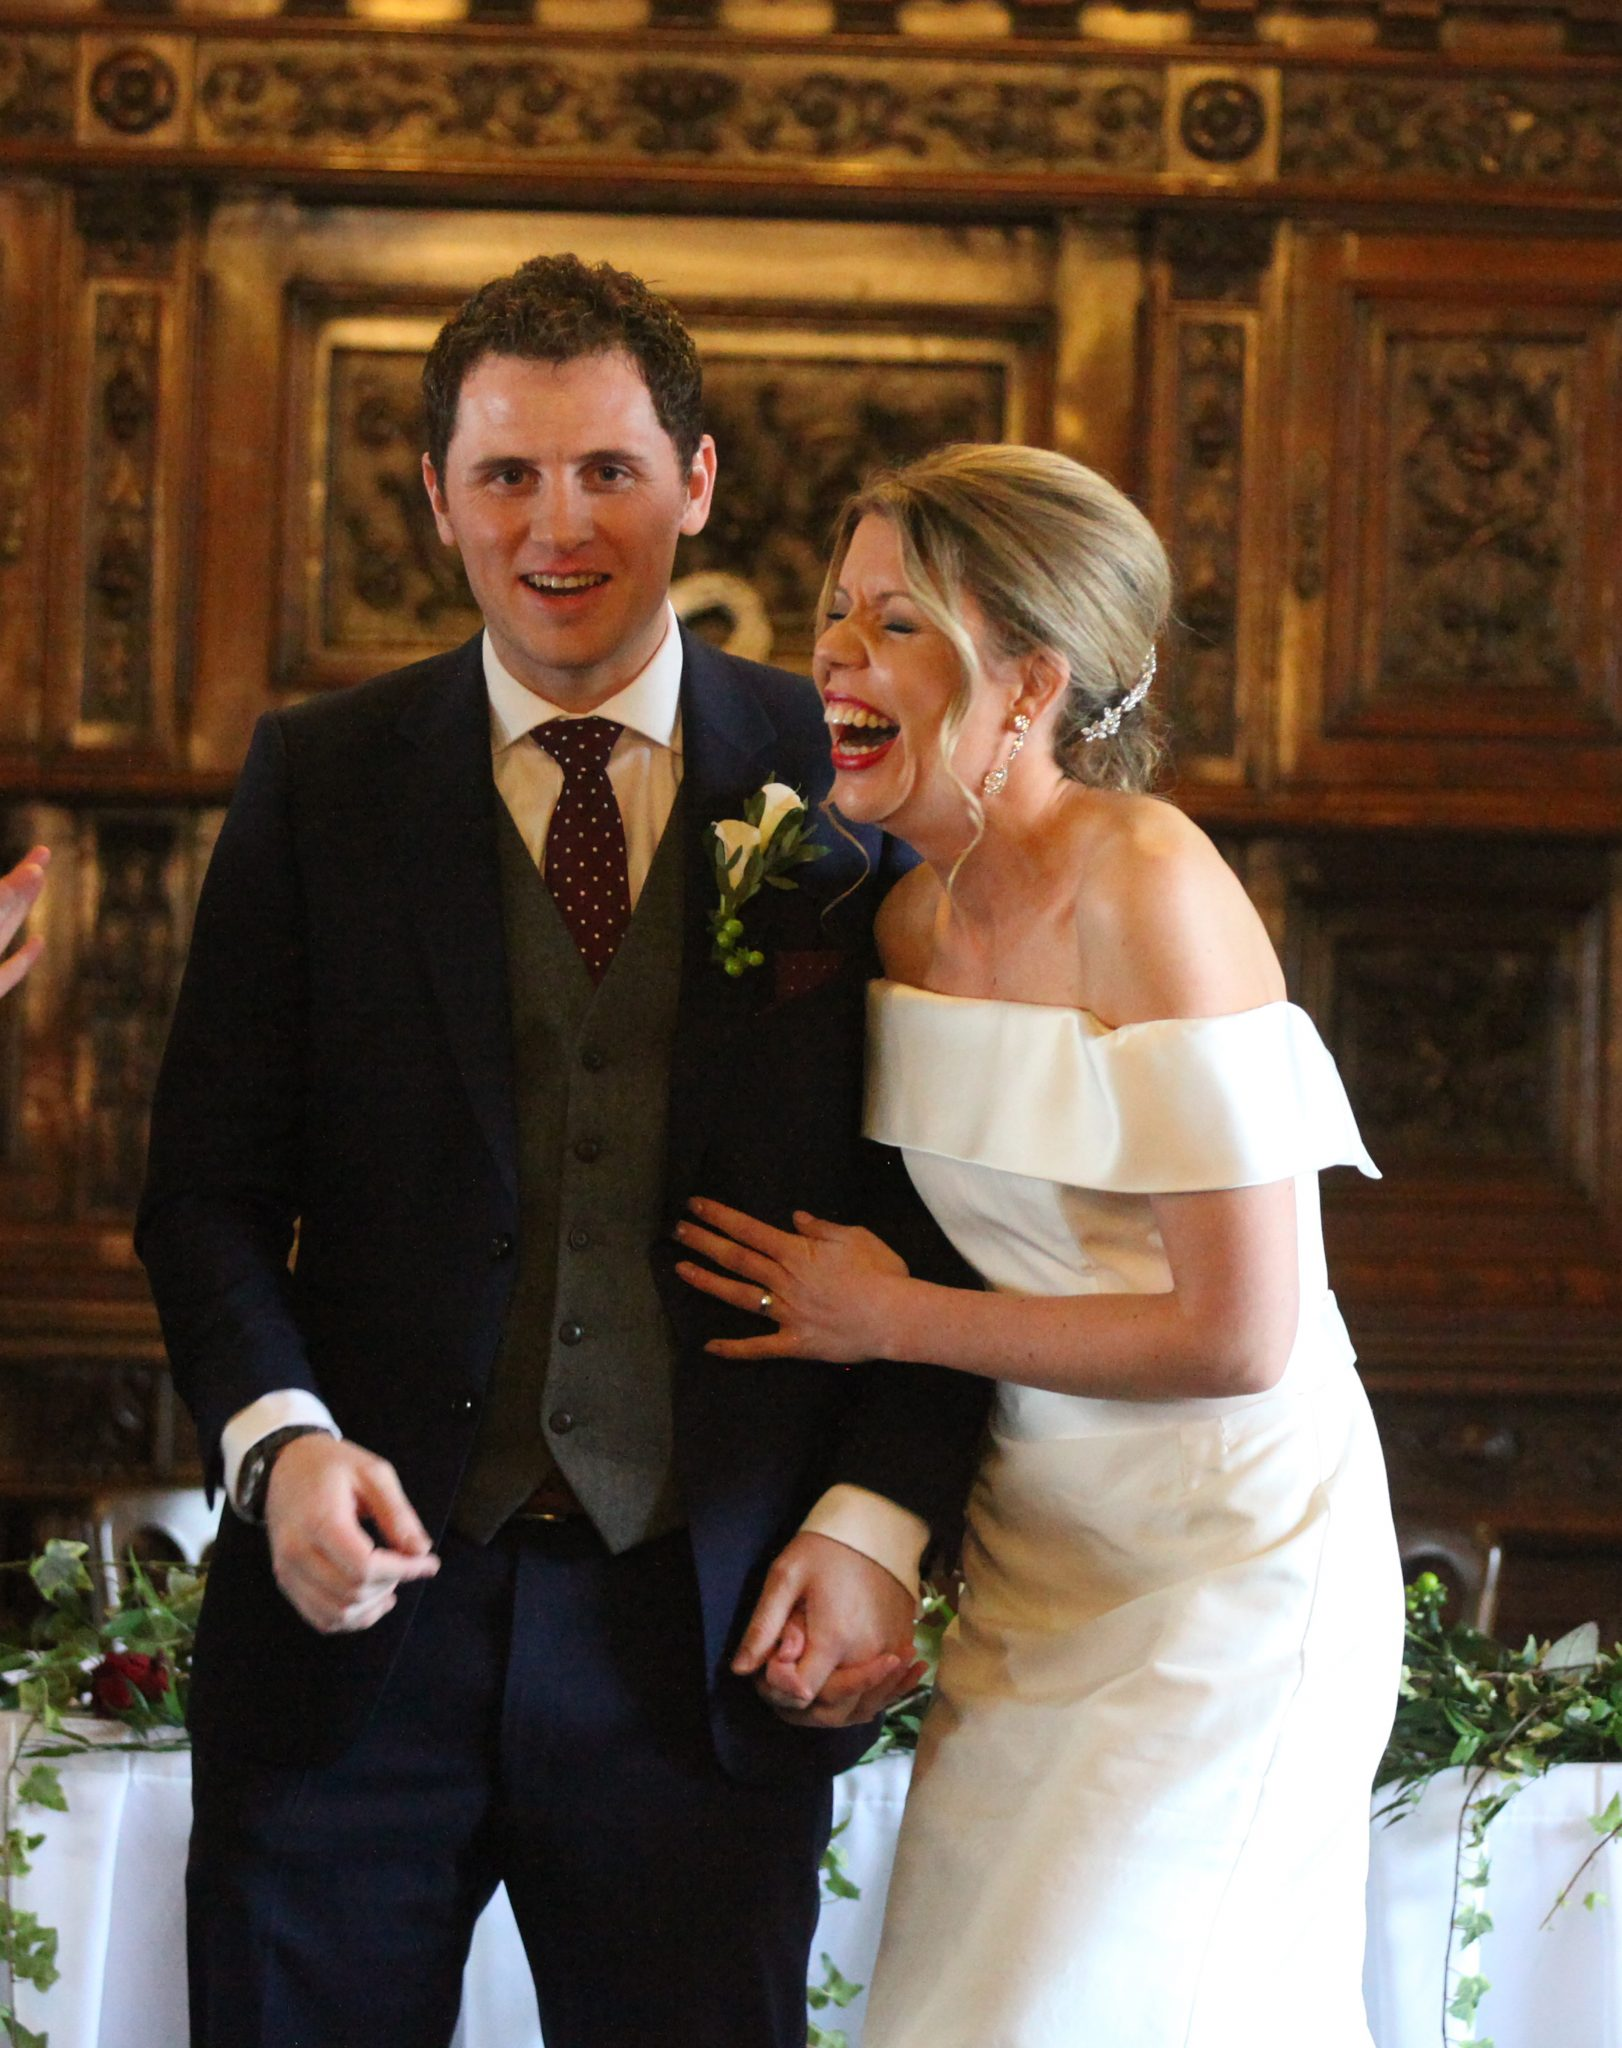 Essendon Country Club bride and groom laugh after being given marriage certficate.